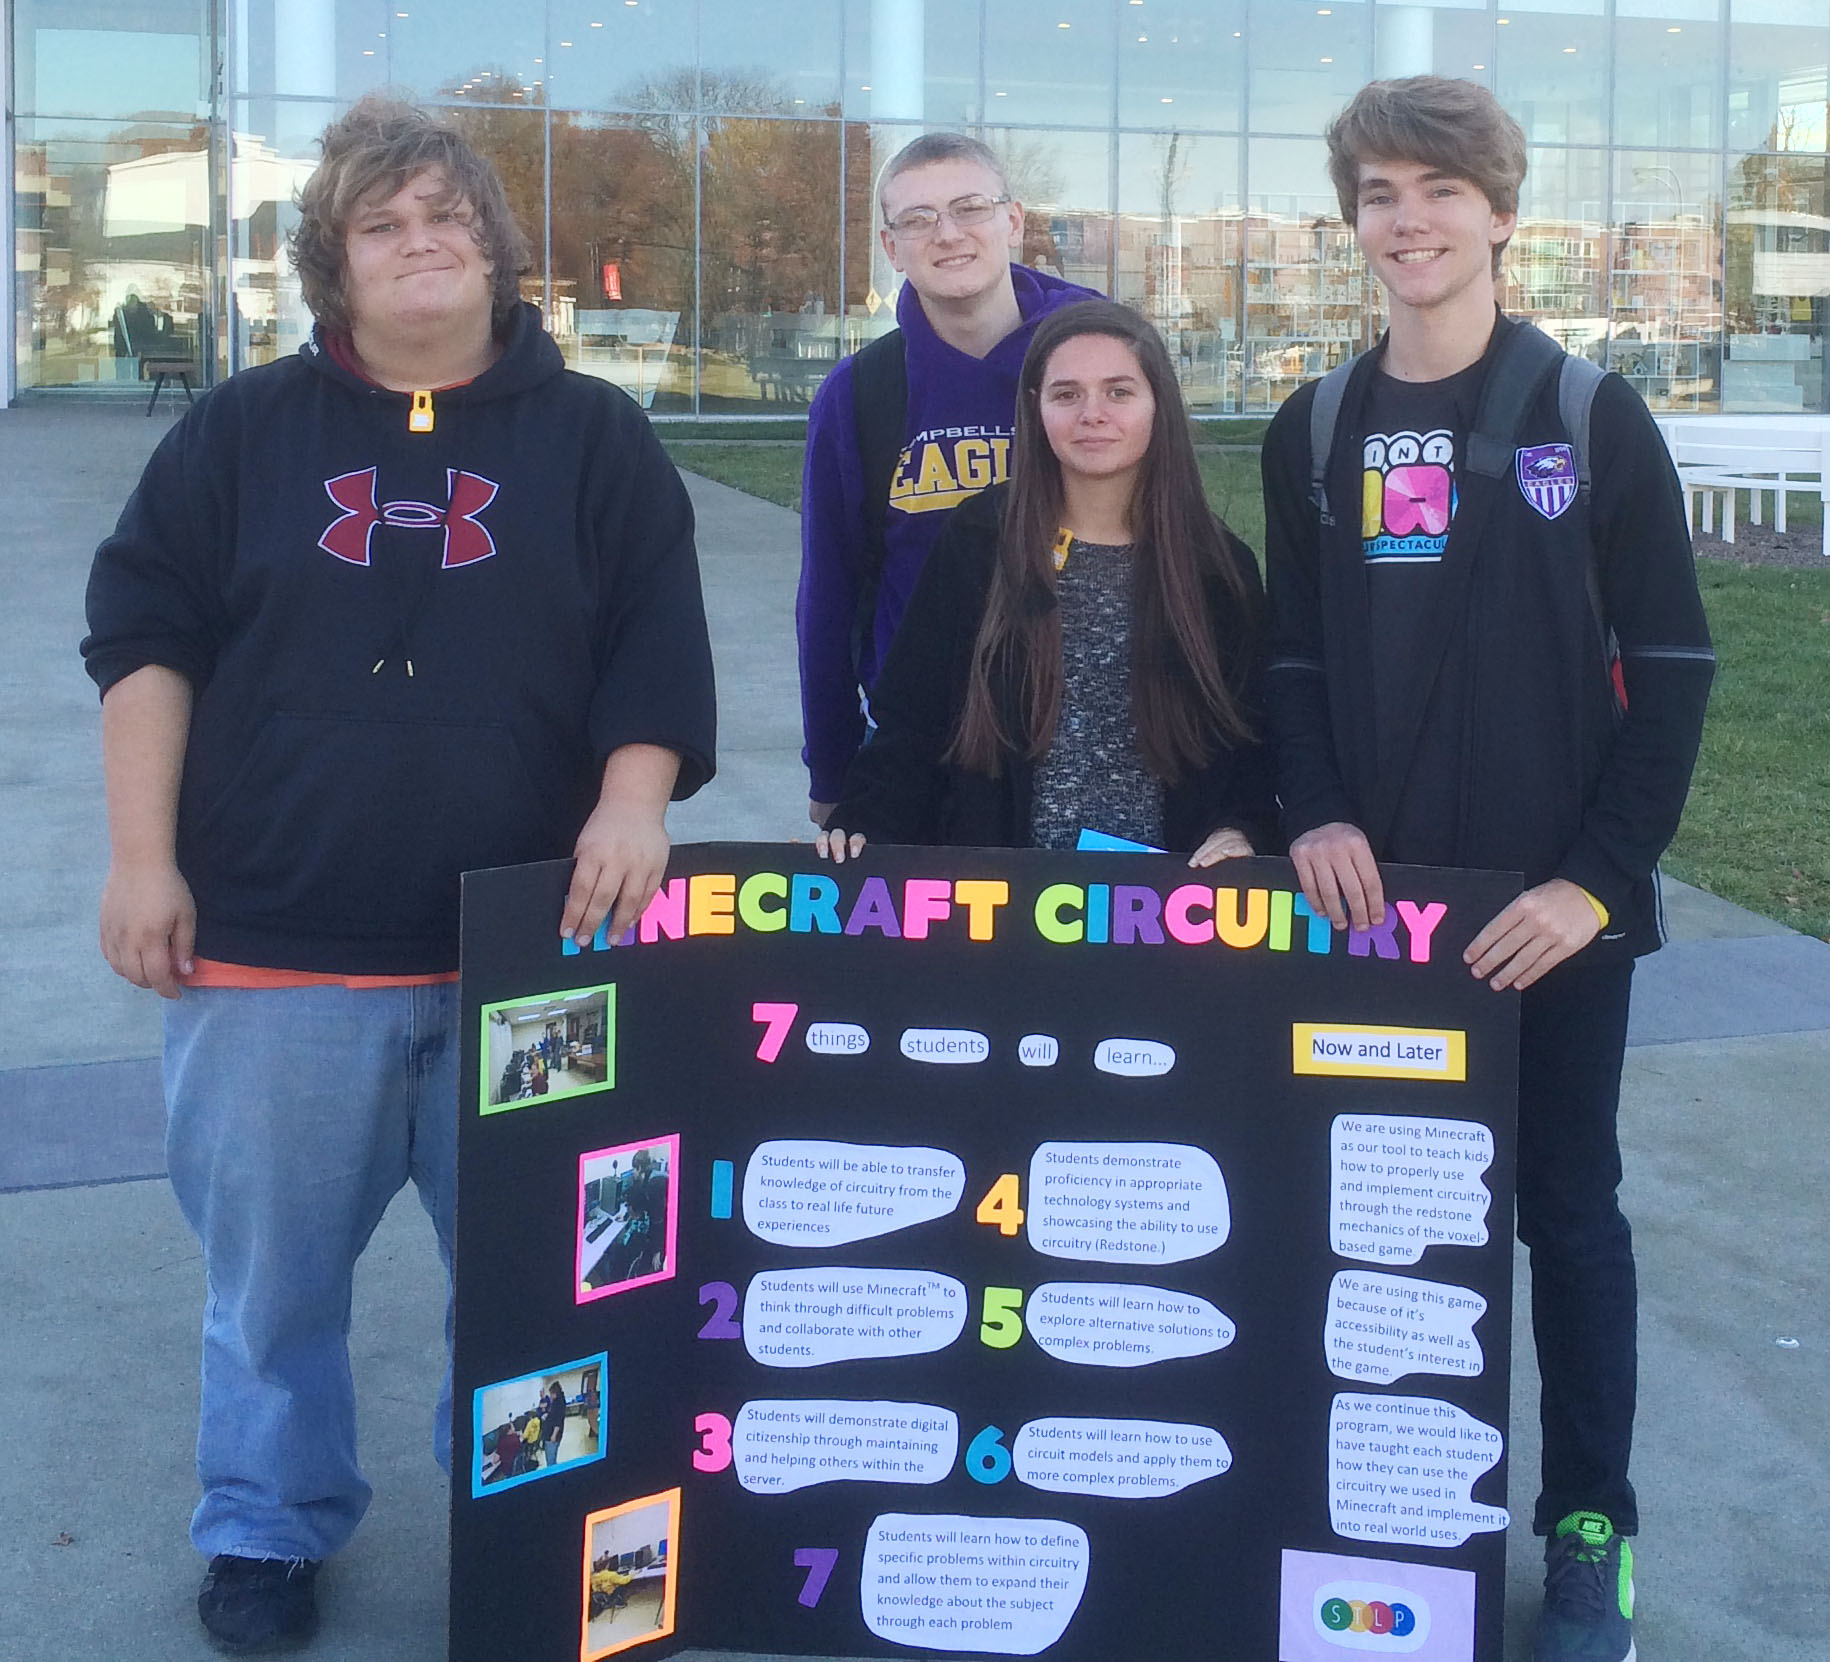 In the Showcase Project category, for the Minecraft Circuitry competition, the CHS team advanced to compete again. The team includes, from left, sophomore Randy Harris, seniors Ben Rafferty and Shauna Jones and junior Christian Berry.